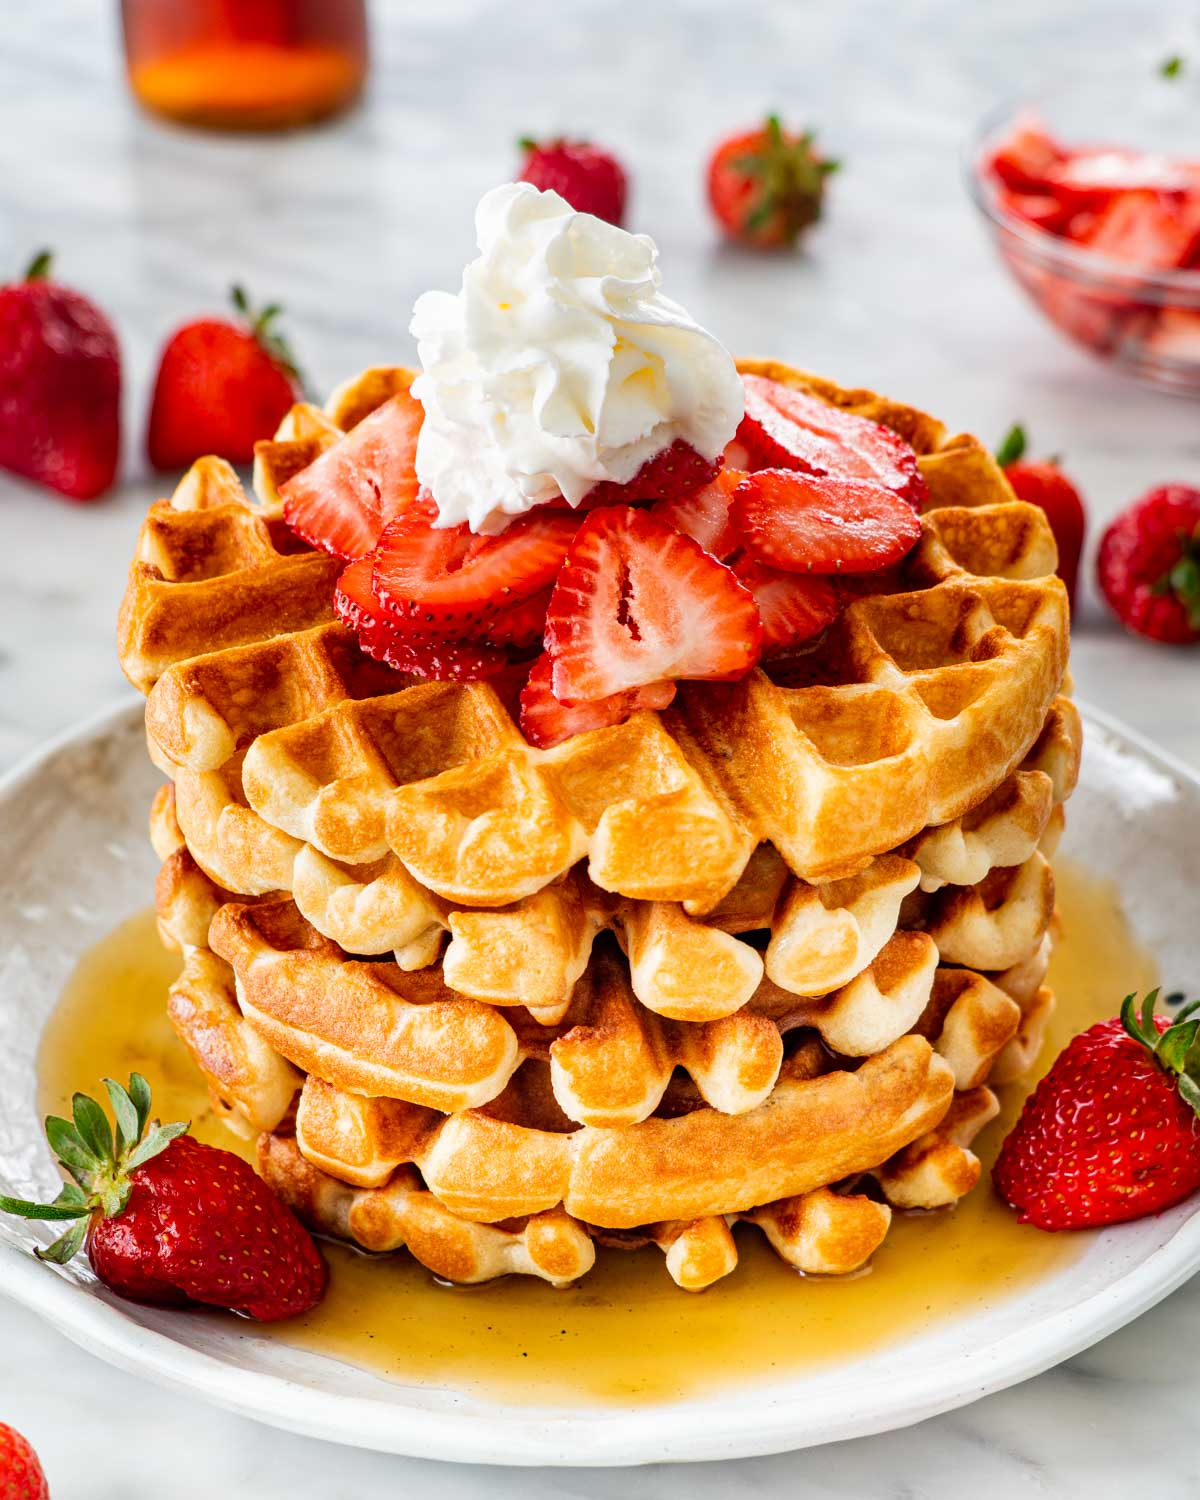 a stack of belgian waffles on a white plate topped with maple syrup, strawberries and whipped cream